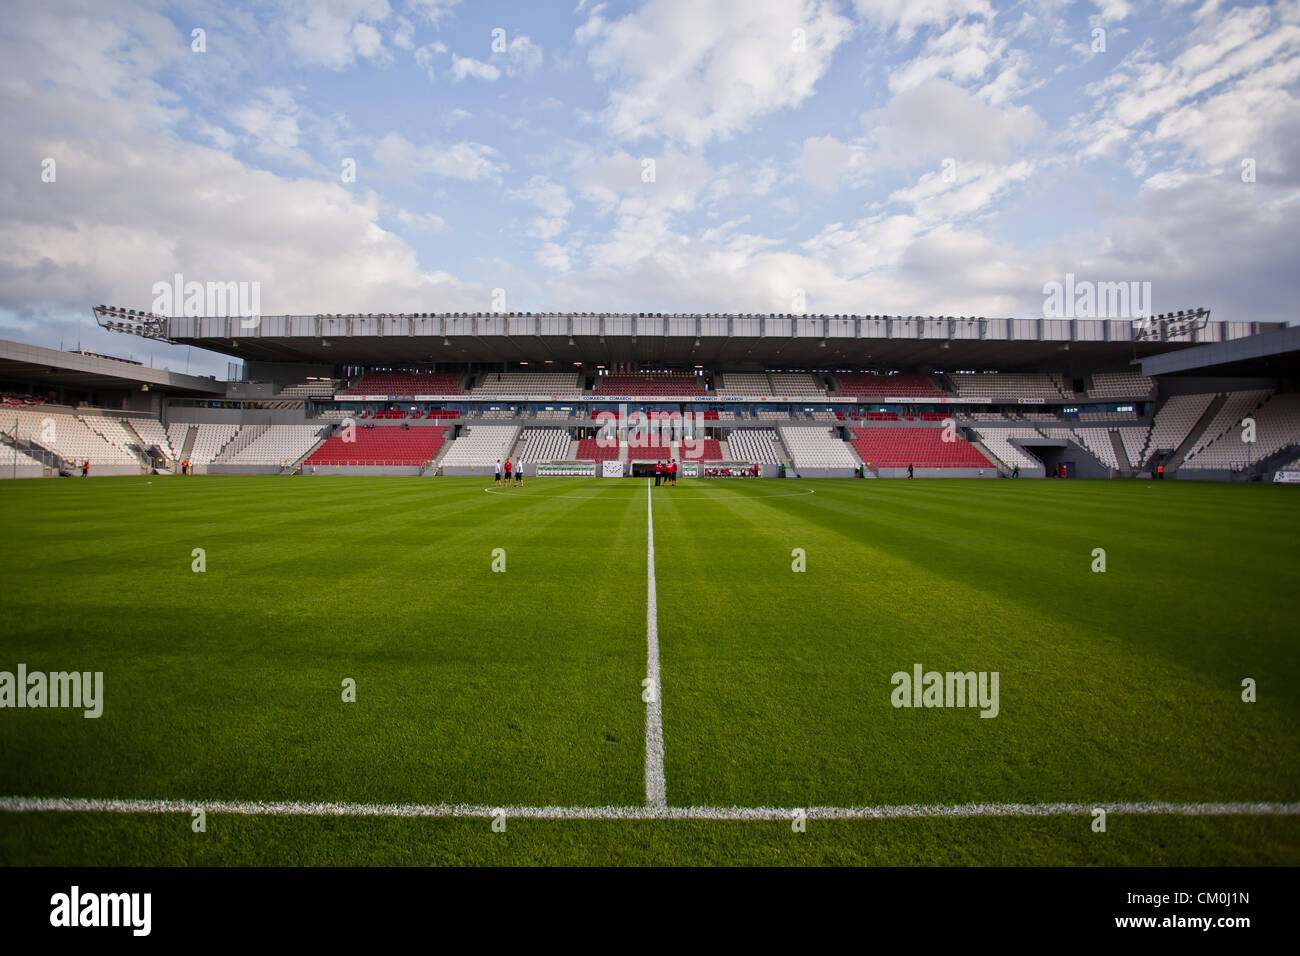 marshal jozef pilsudski stadium football stadium in krakow poland stock photo royalty free. Black Bedroom Furniture Sets. Home Design Ideas